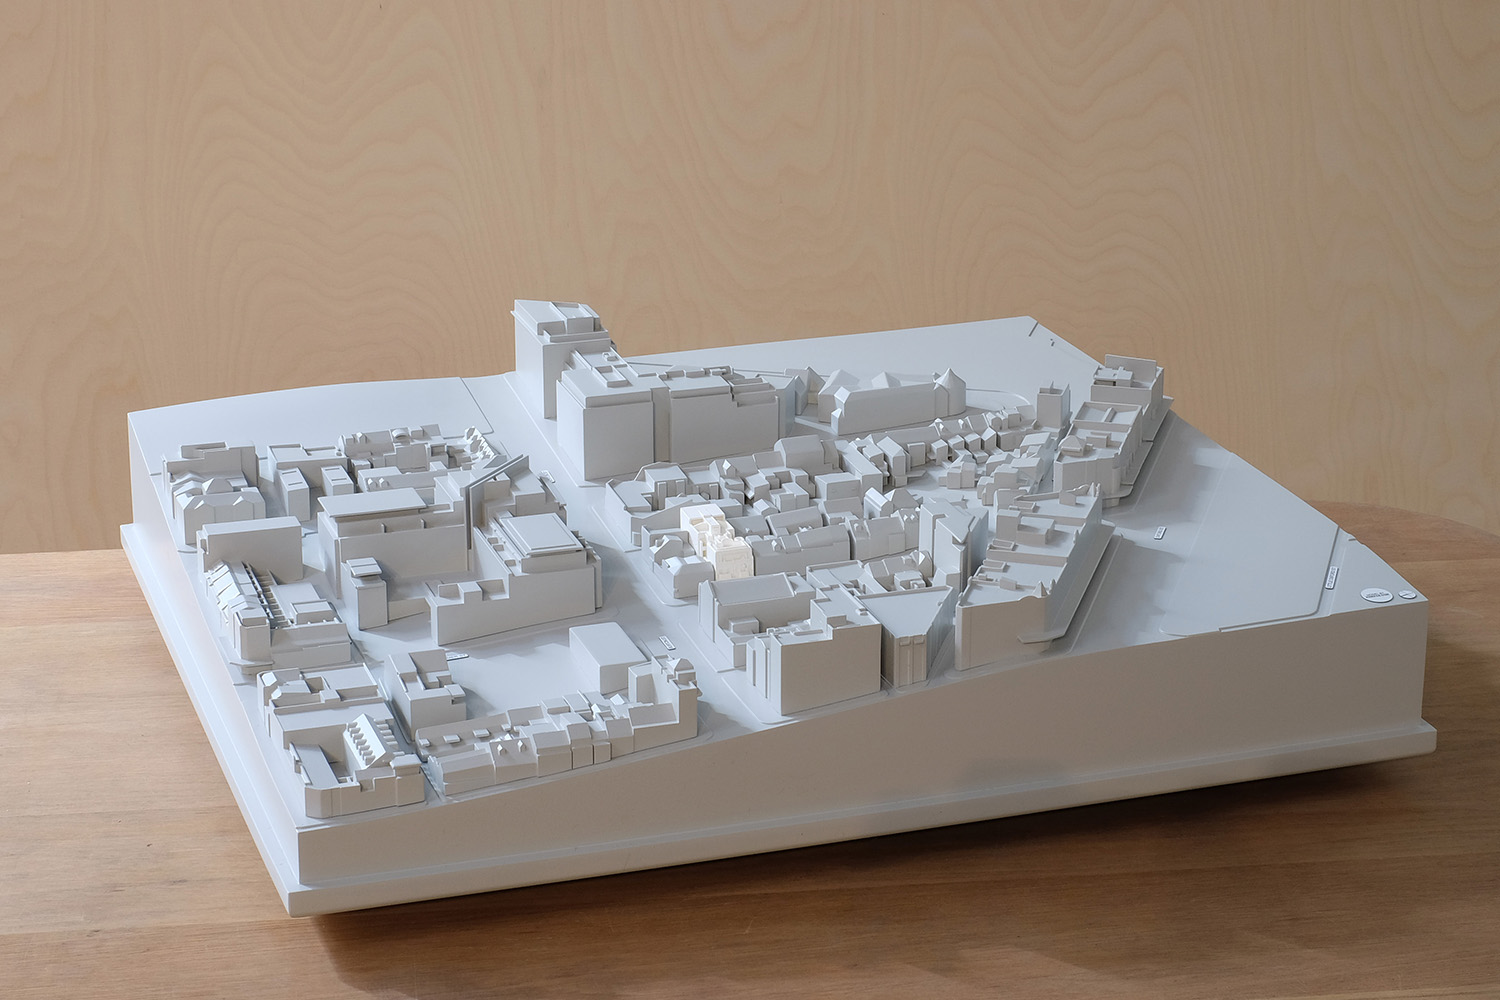 City of Sydney DA model 1_500 Envelope Architects 2.jpg